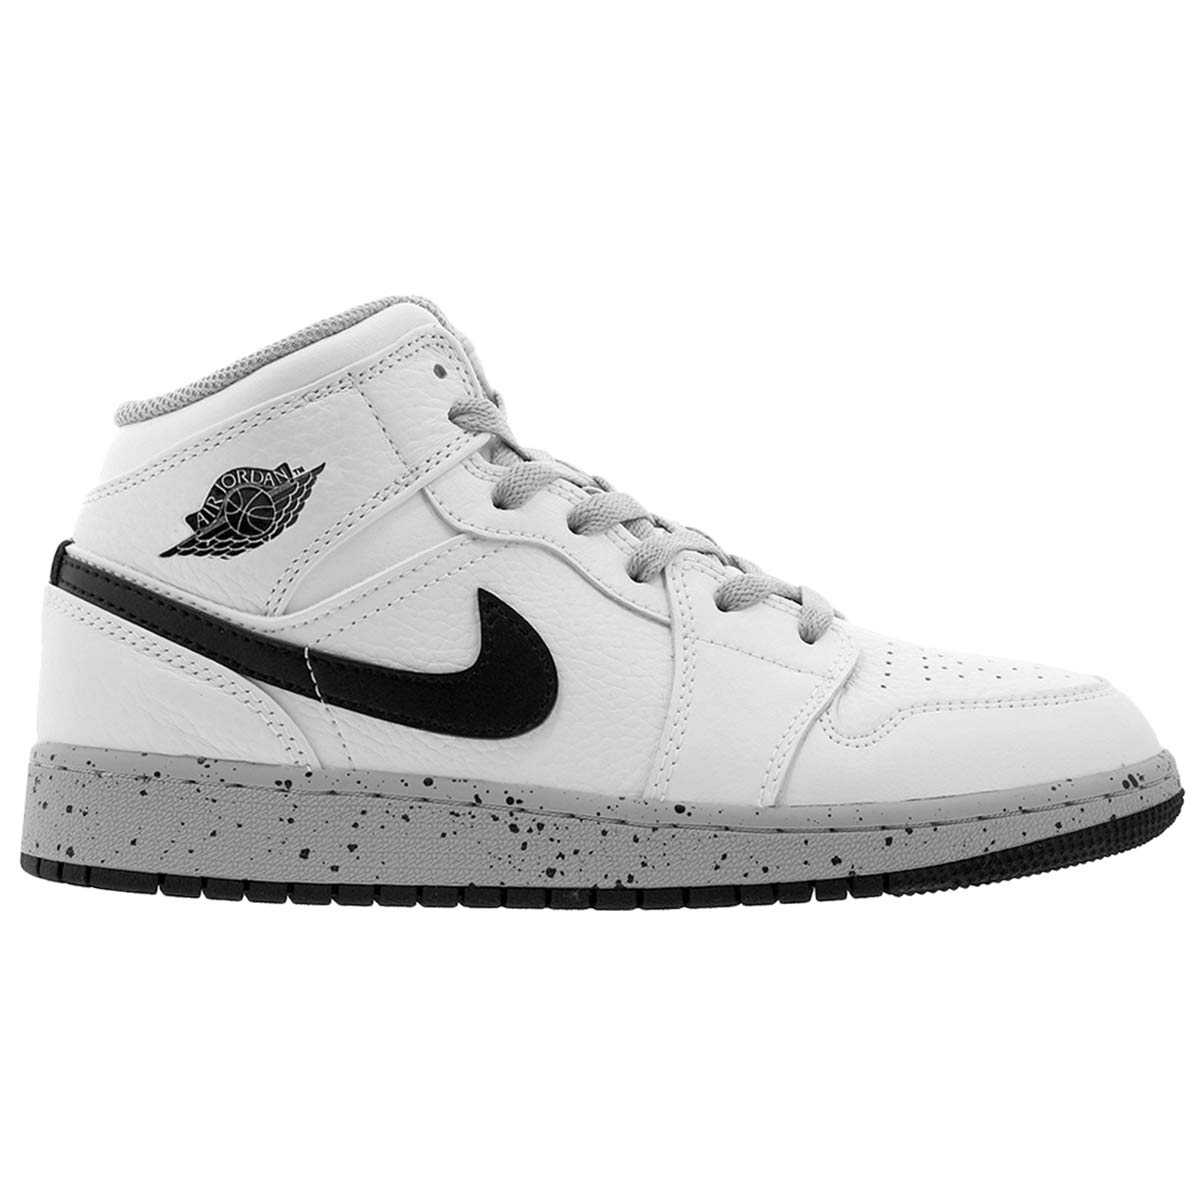 5d2df107f9a6e Amazon.com | Nike Jordan Youth 1 Mid Bg Leather White Black Wolf ...